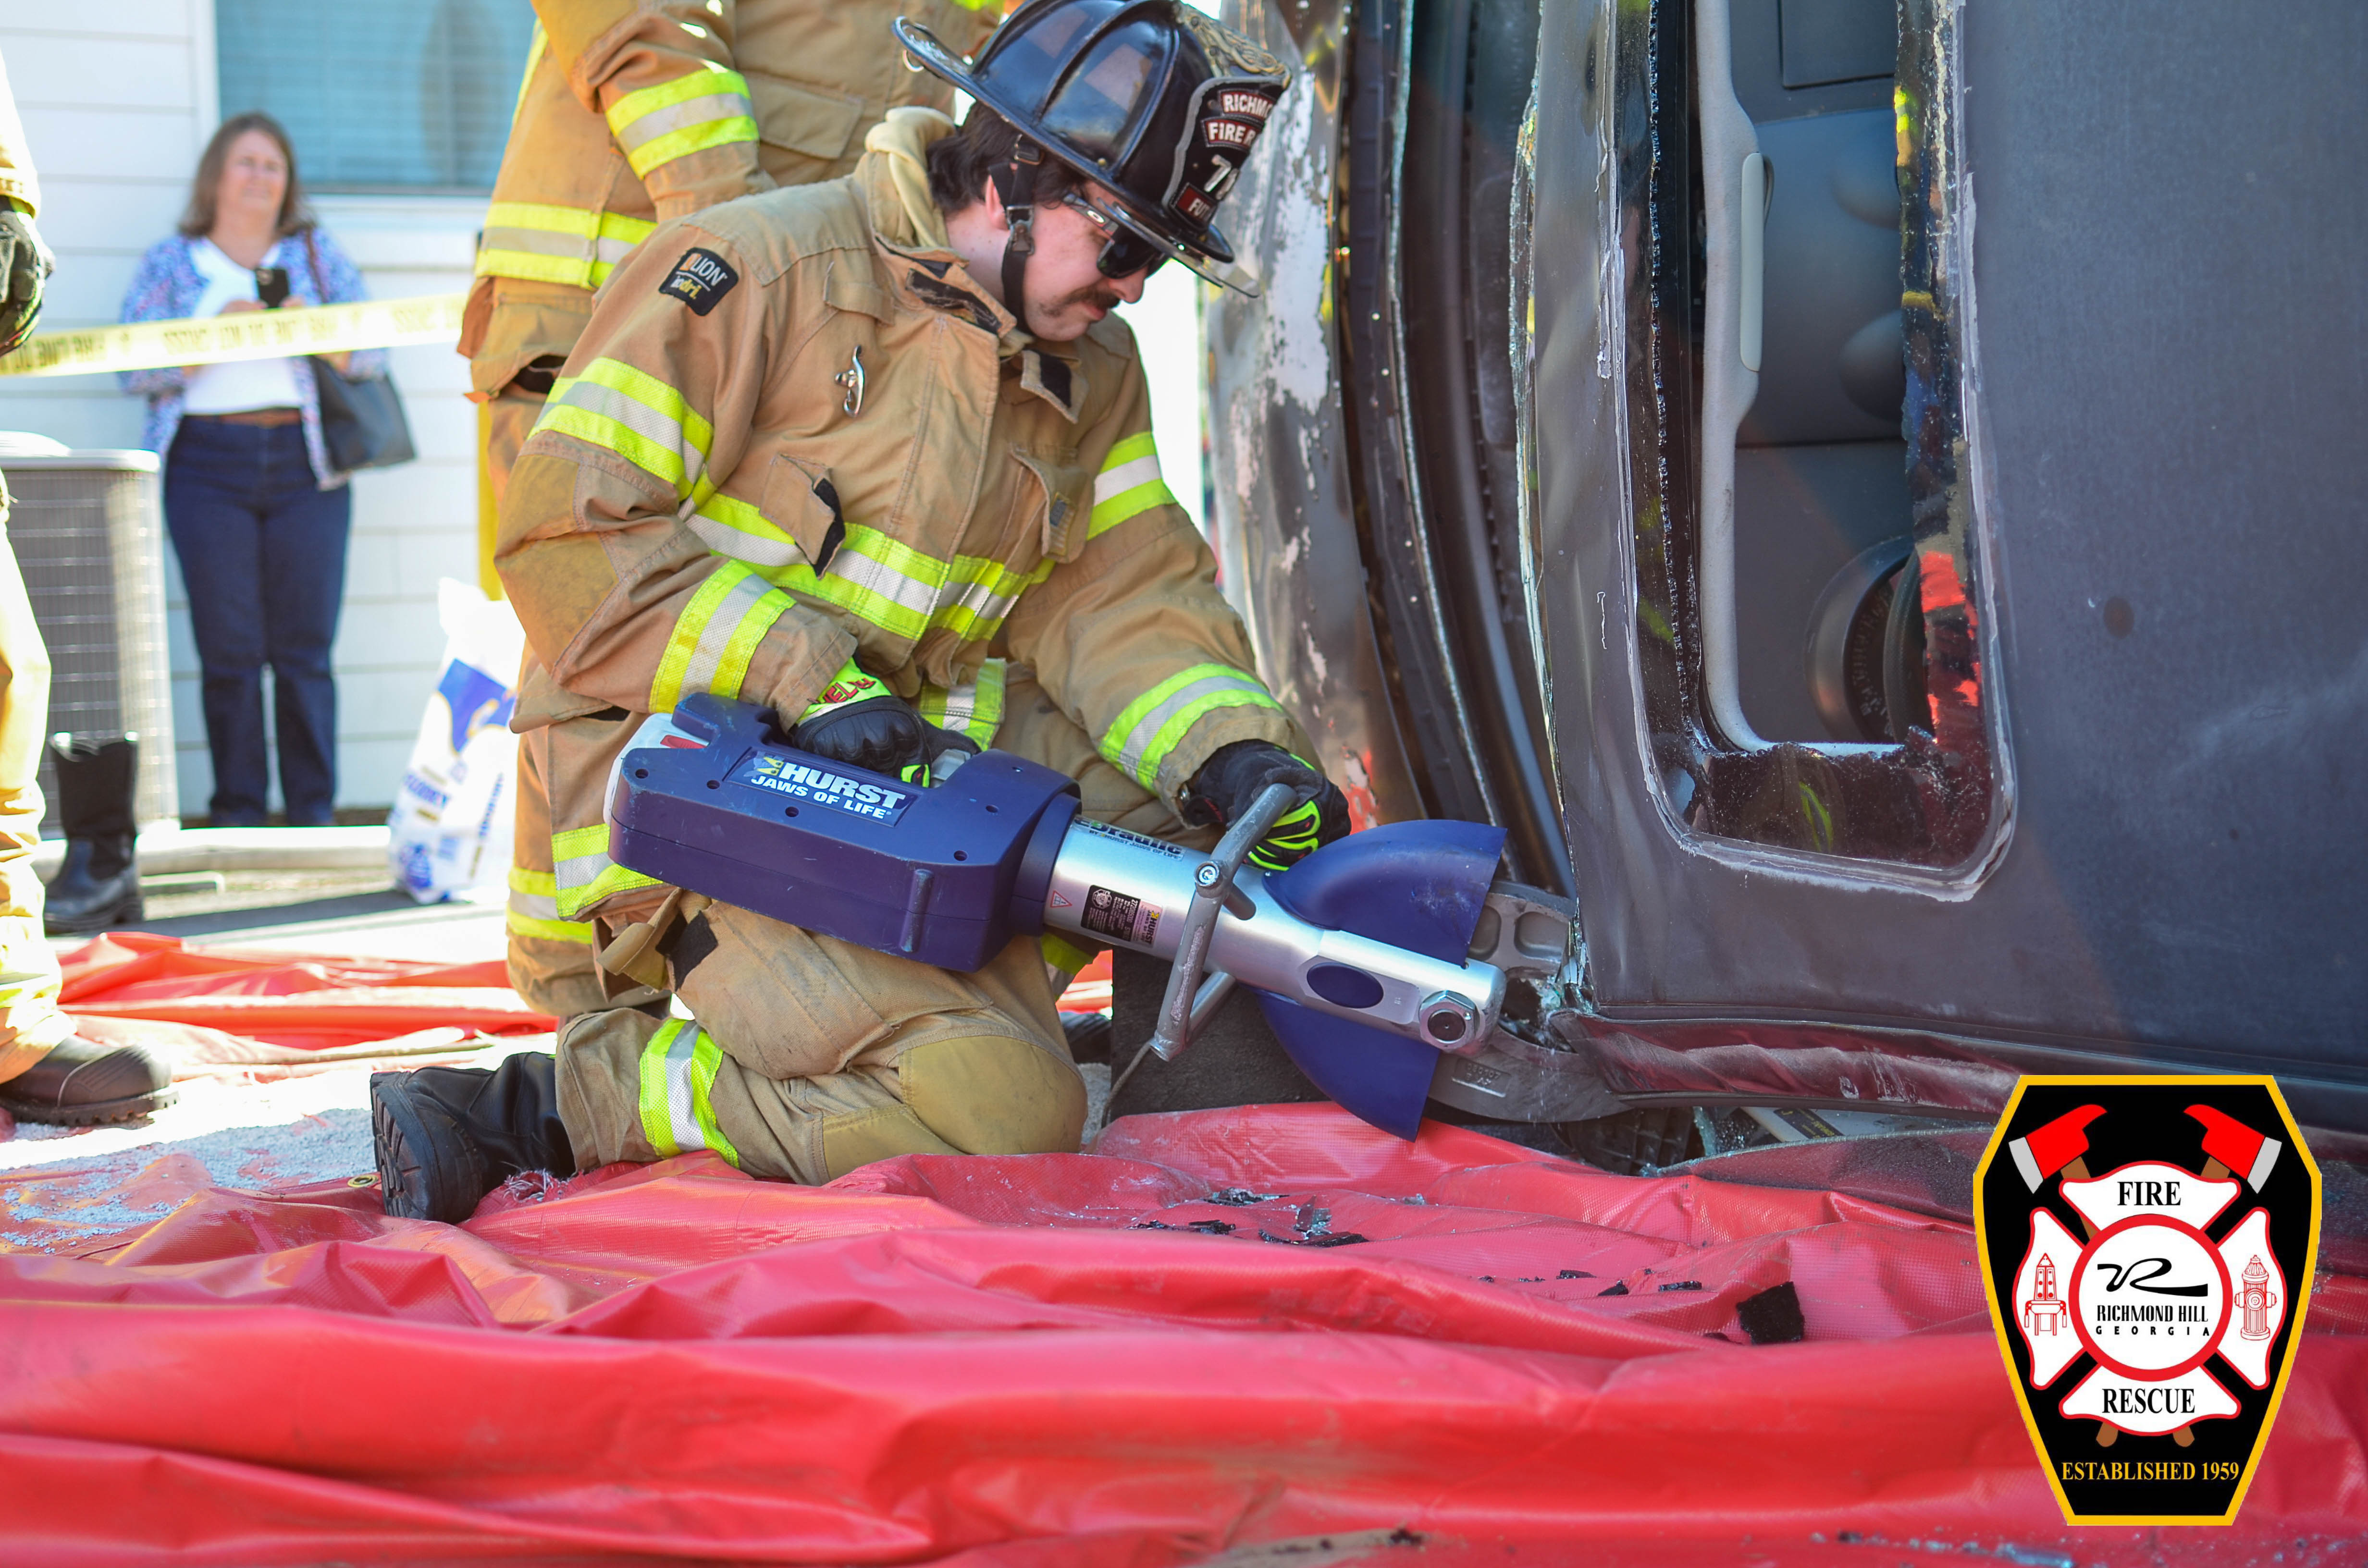 A firefighter uses a took to cut open a wrecked car